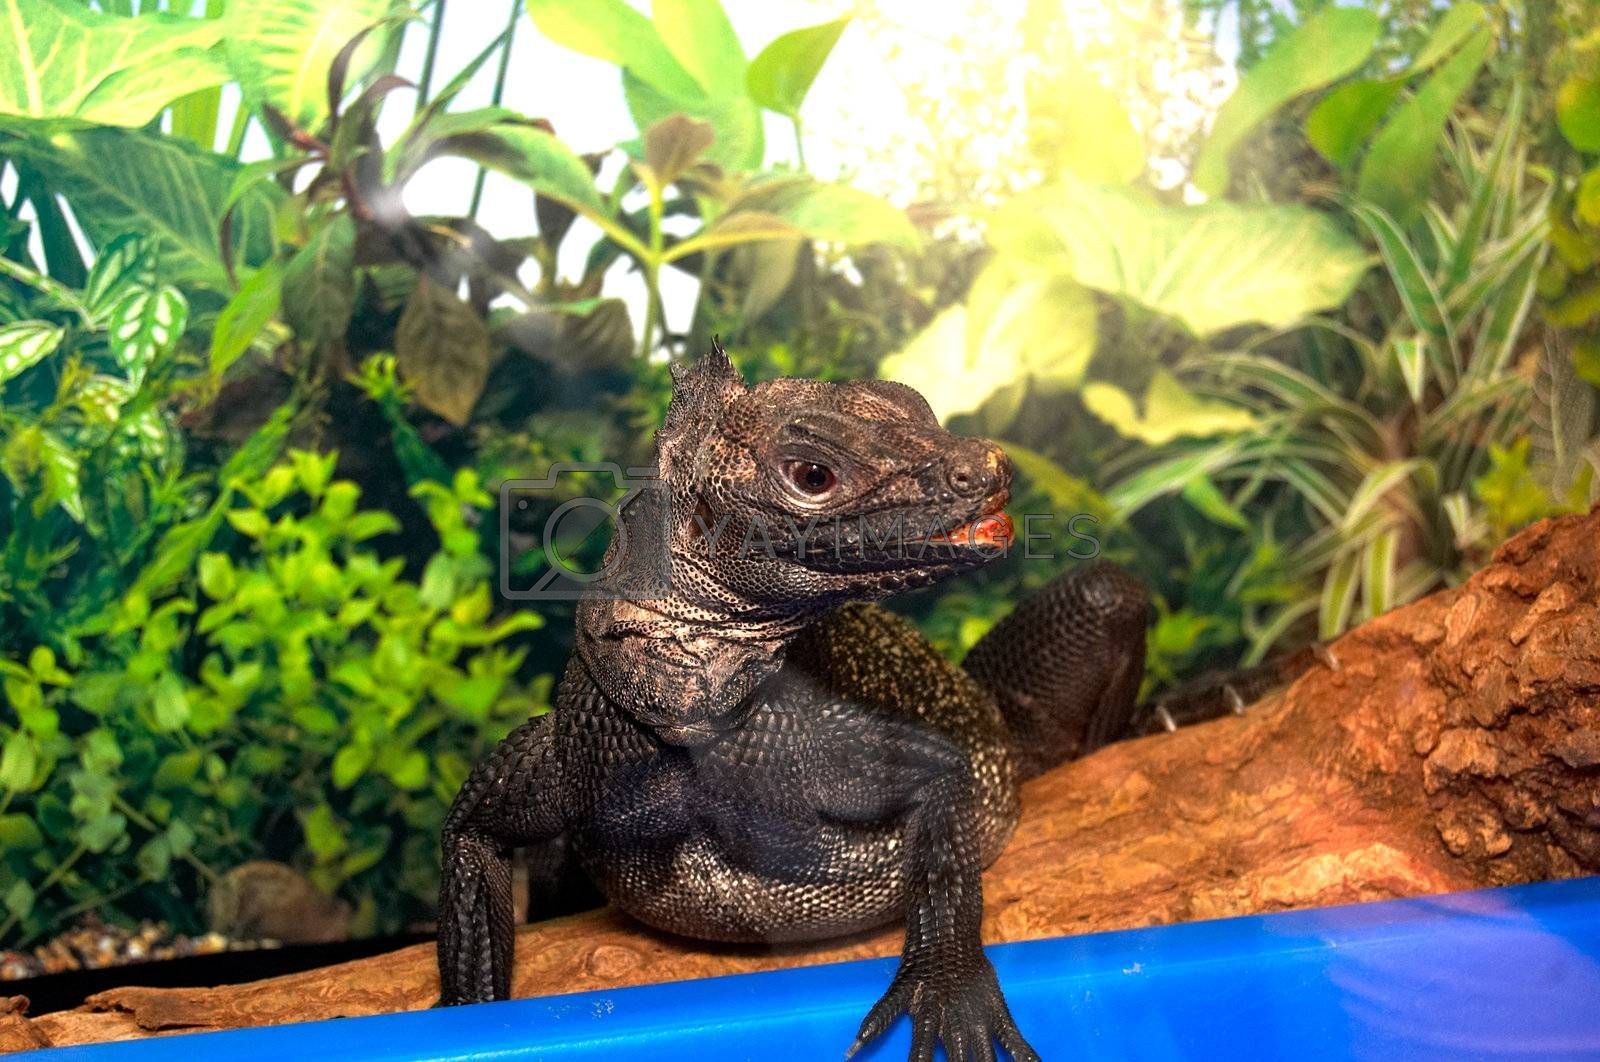 The big black lizard with pink lips sits in a terrarium